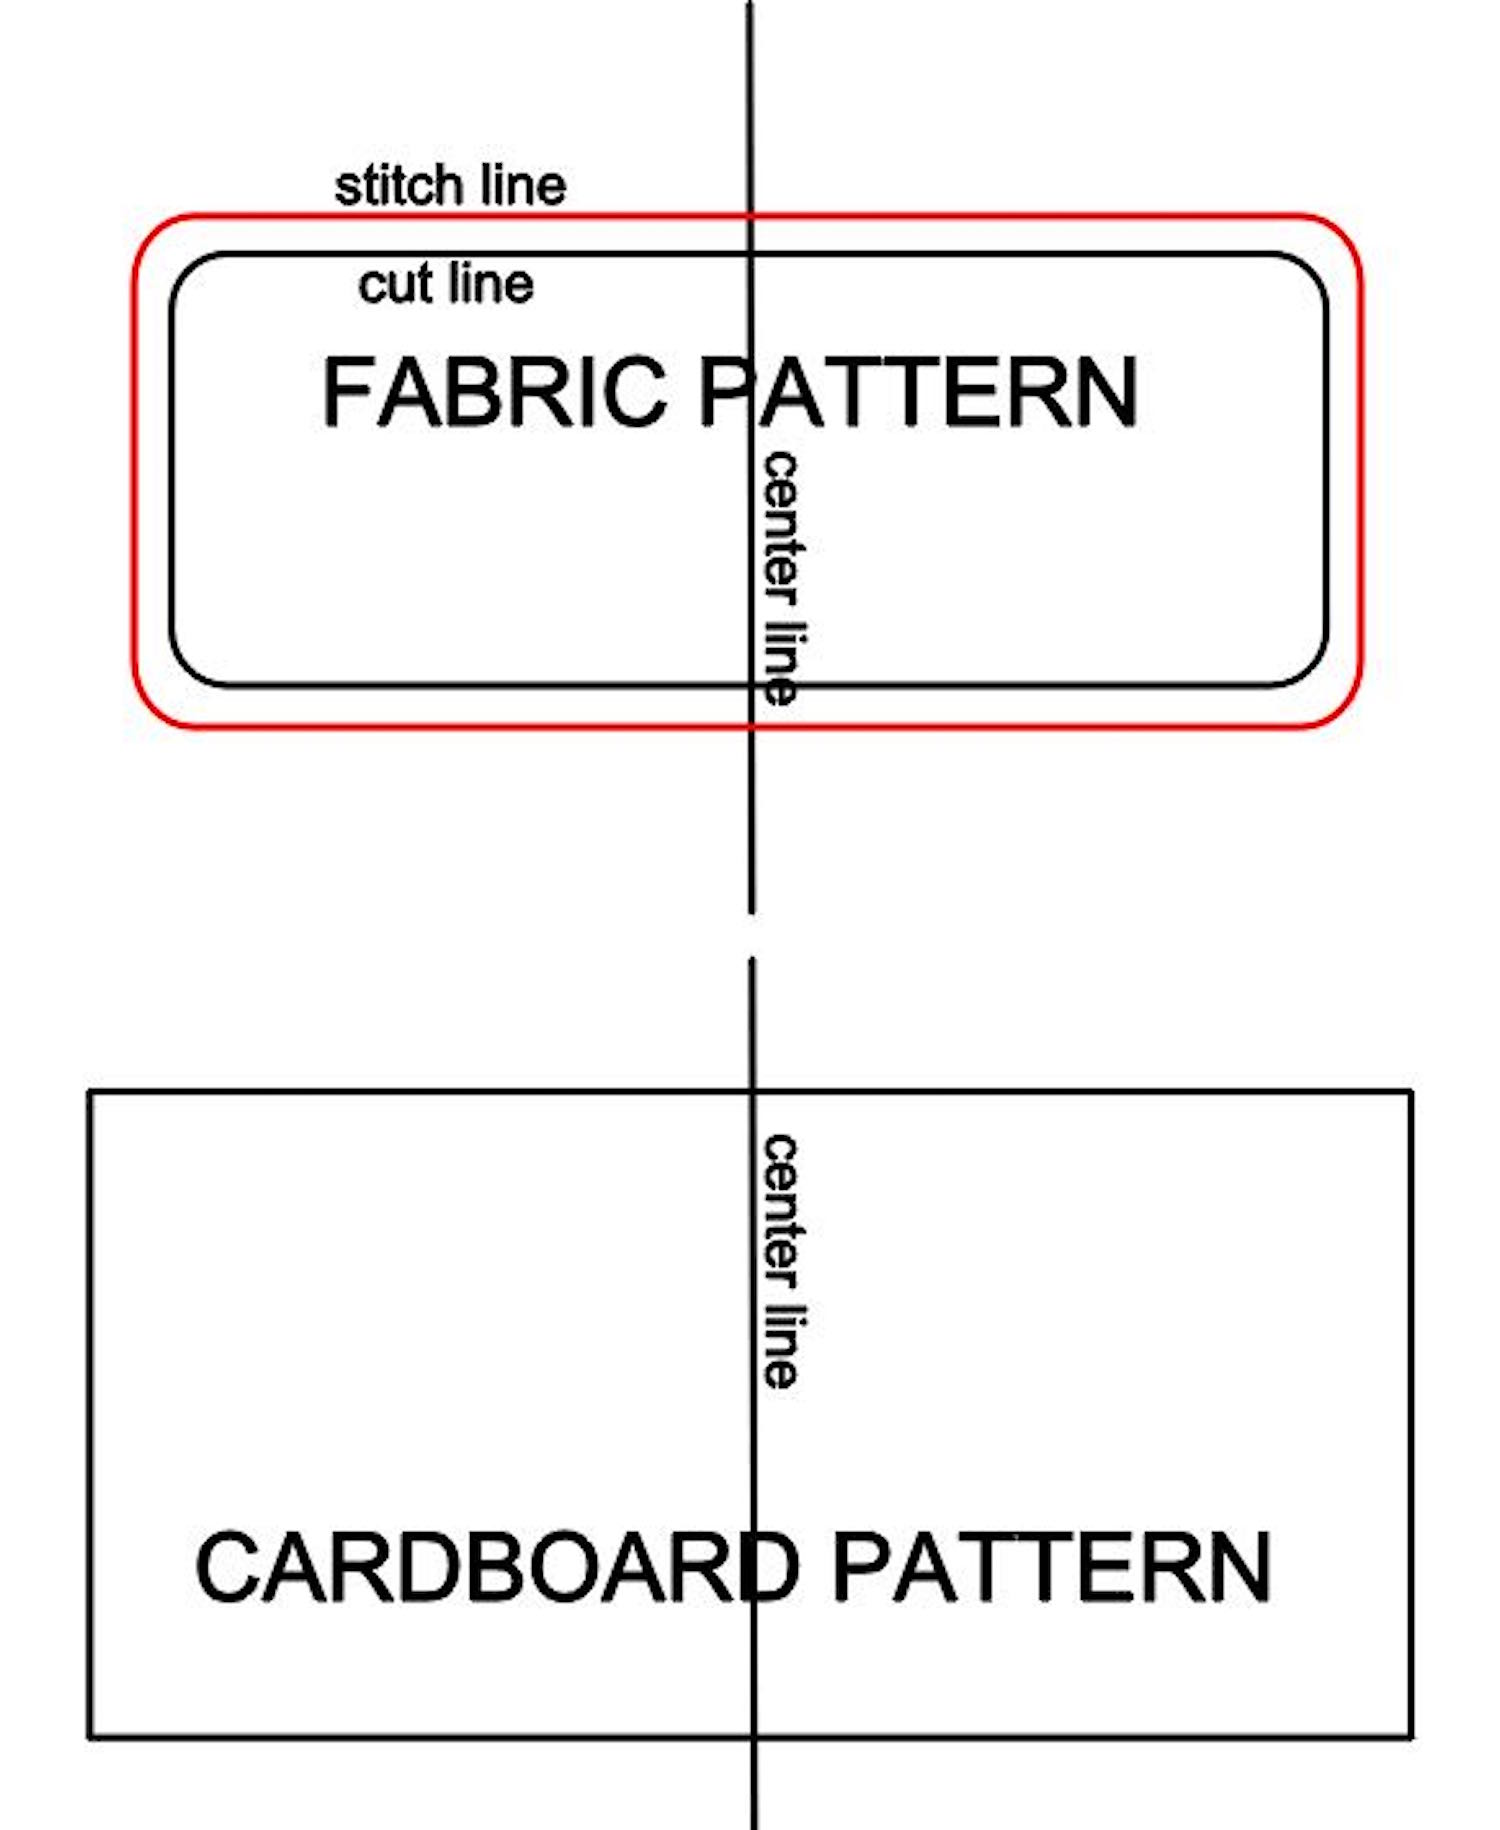 step 1 - Download the pdf instructions. Print one of the fabric pattern and two of the cardboard pattern.